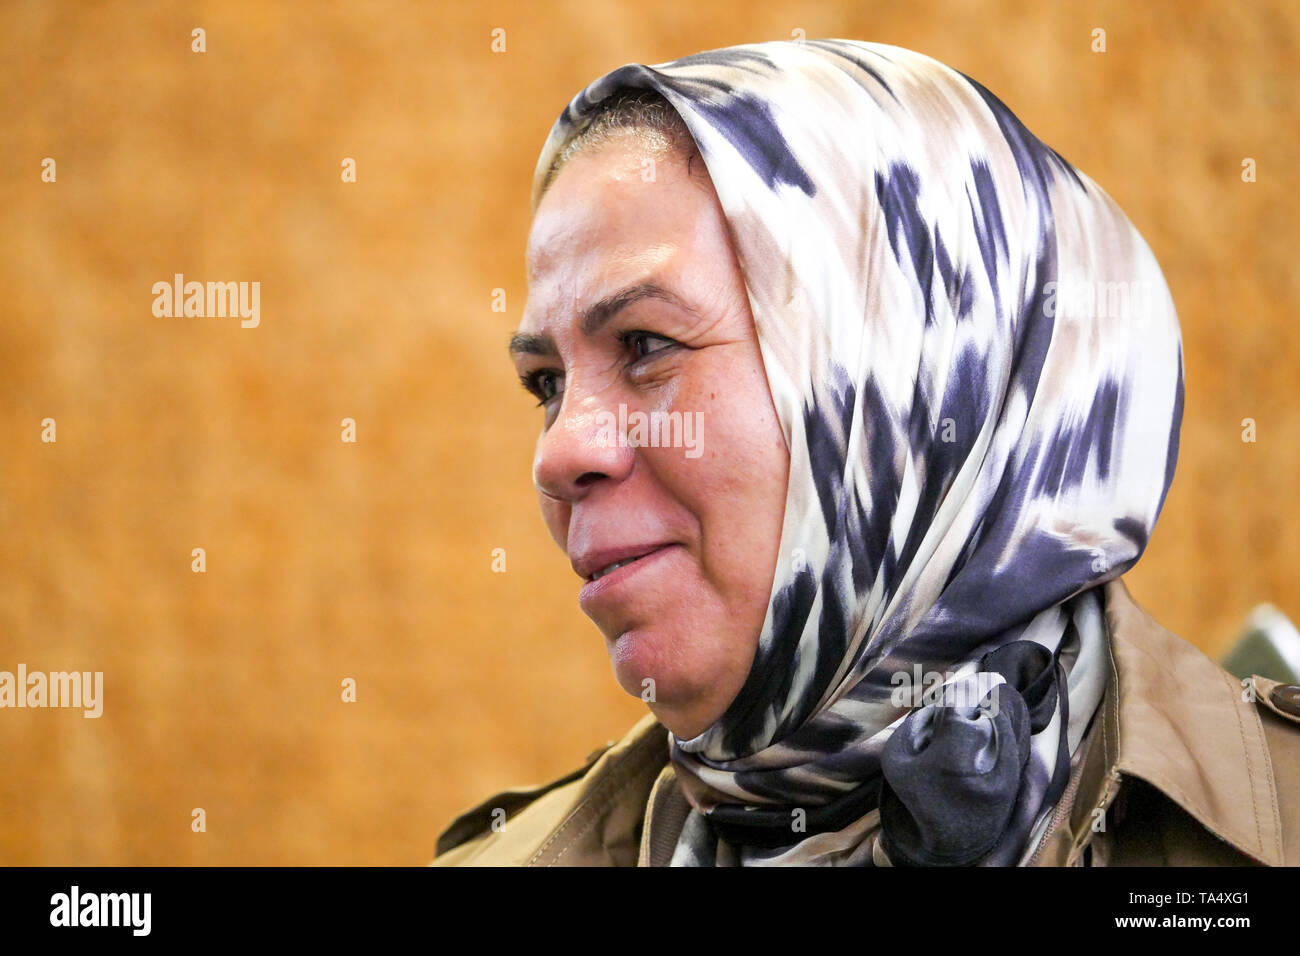 Latifa Ibn Ziaten, founder of IMAD association for Youth and Peace, portrayed in Lyon, France Stock Photo